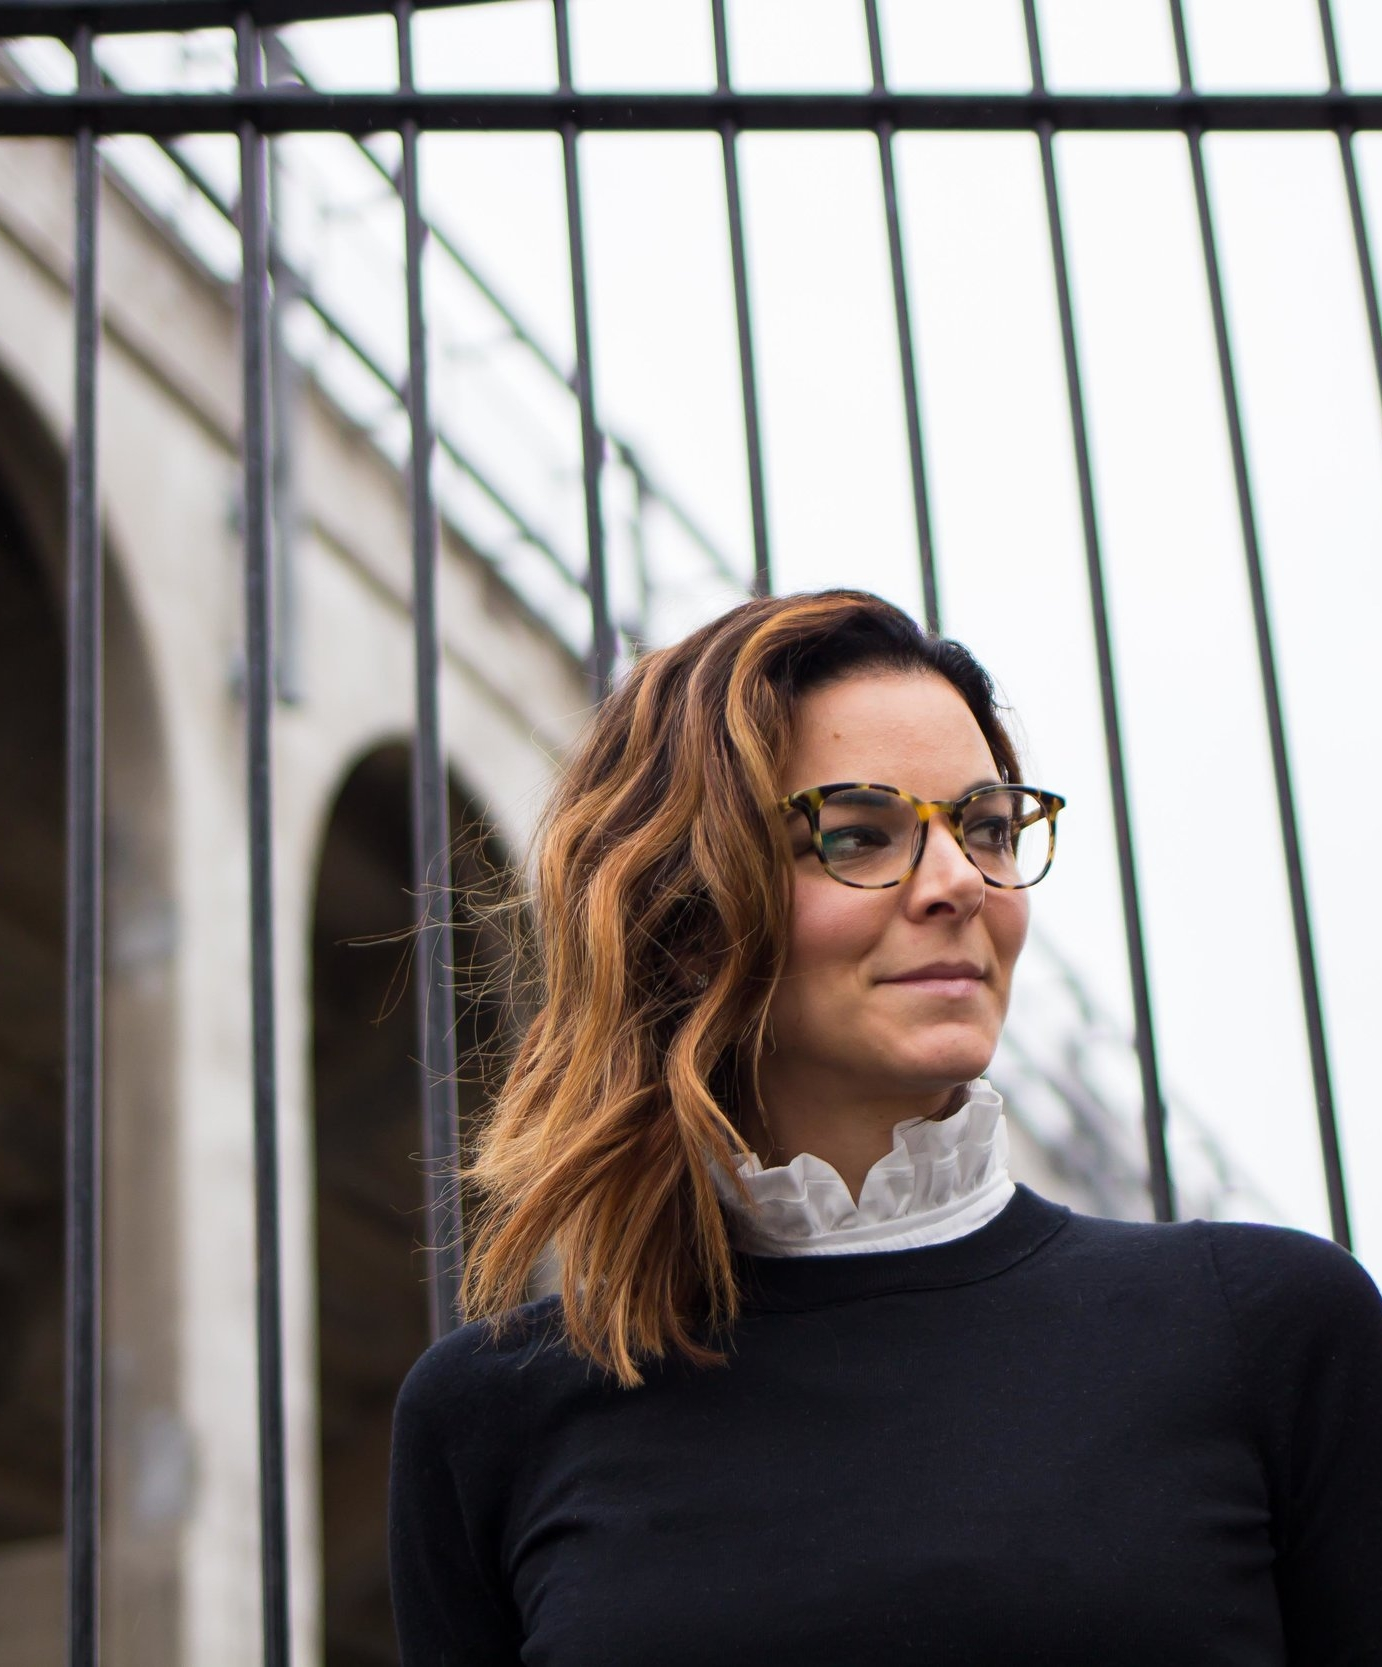 Warby Parker – Home Try-On - Tortoise Shell Glasses – Eye Glasses - Fashion for Women – Tortoise Shell Glasses Outfits –  heartandseam.com  #warbyparker #heartandseam